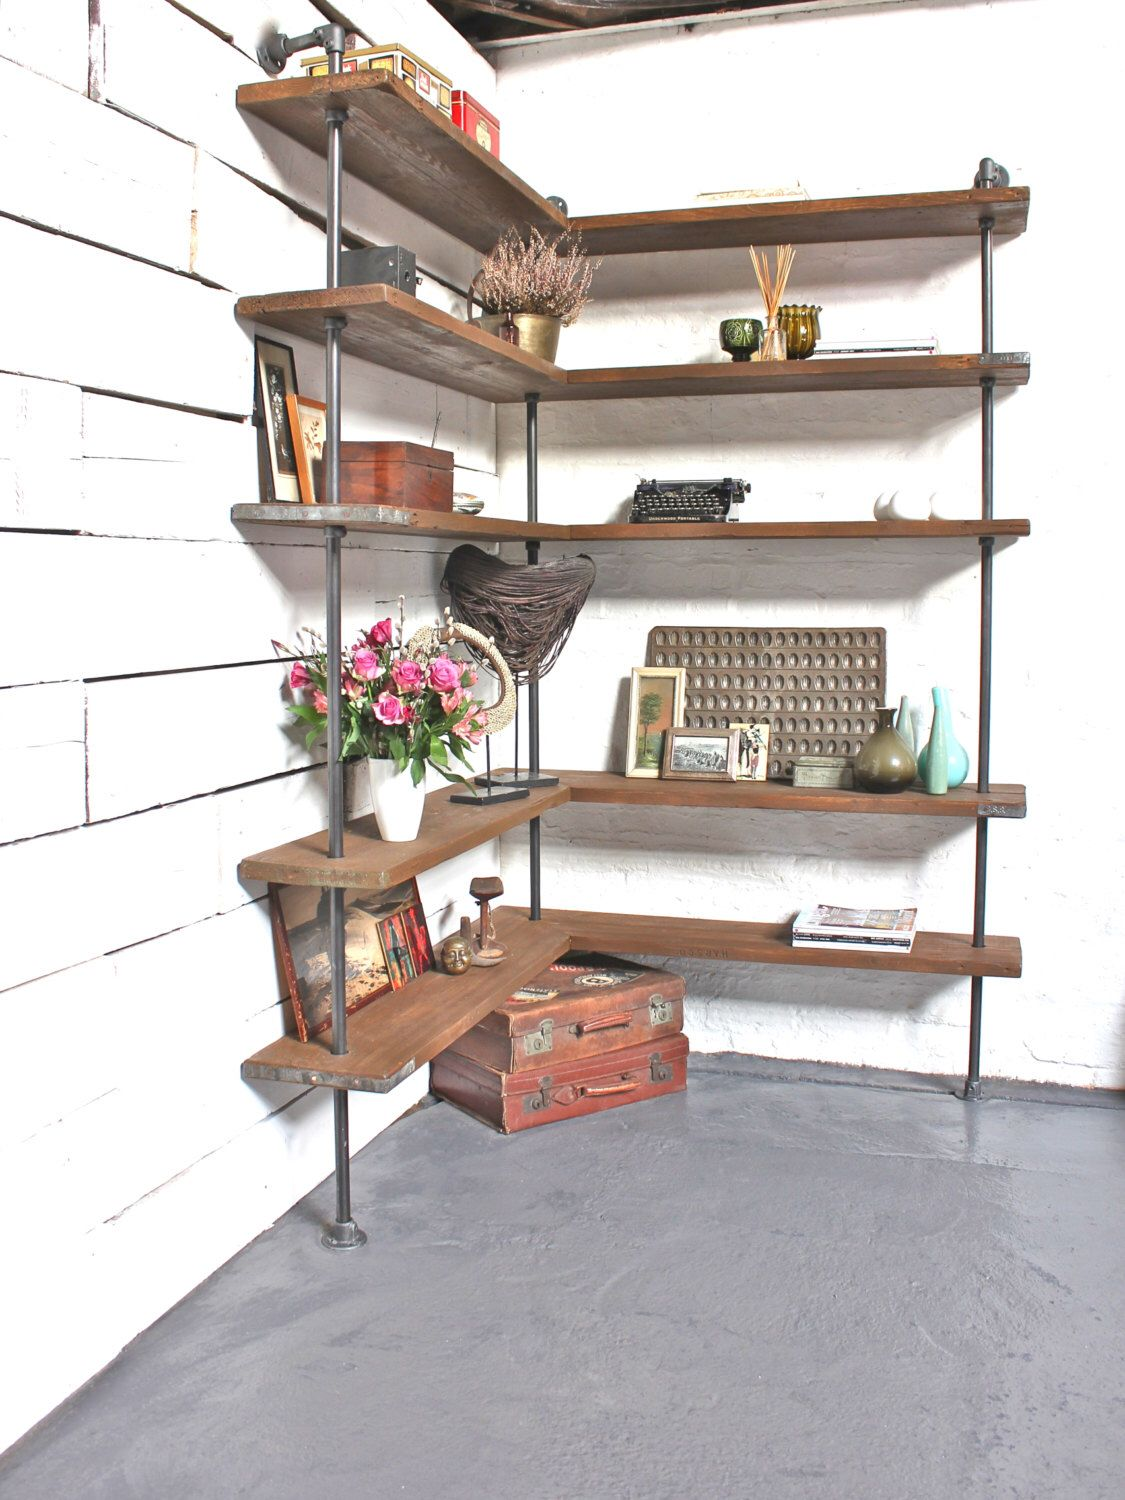 Malin Floor and Wall Mounted Mitred Corner Shelving Unit made with Reclaimed Scaffolding Boards and Dark Steel Pipe